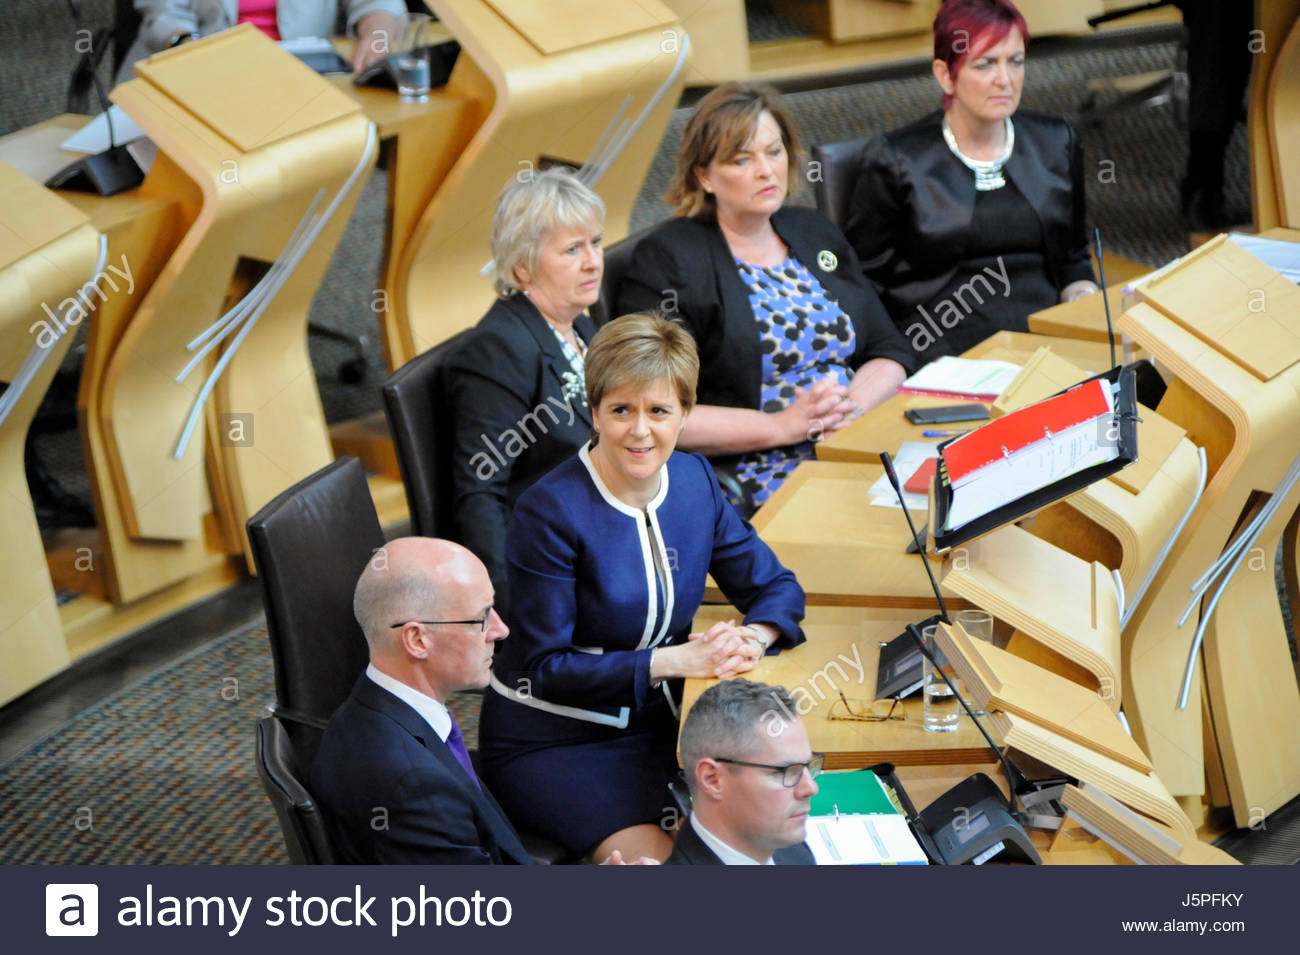 Edinburgh, UK. 18 May, 2017. First Minister Nicola Sturgeon during First Ministers Questions. Roger Gaisford/Alamy - Stock Image